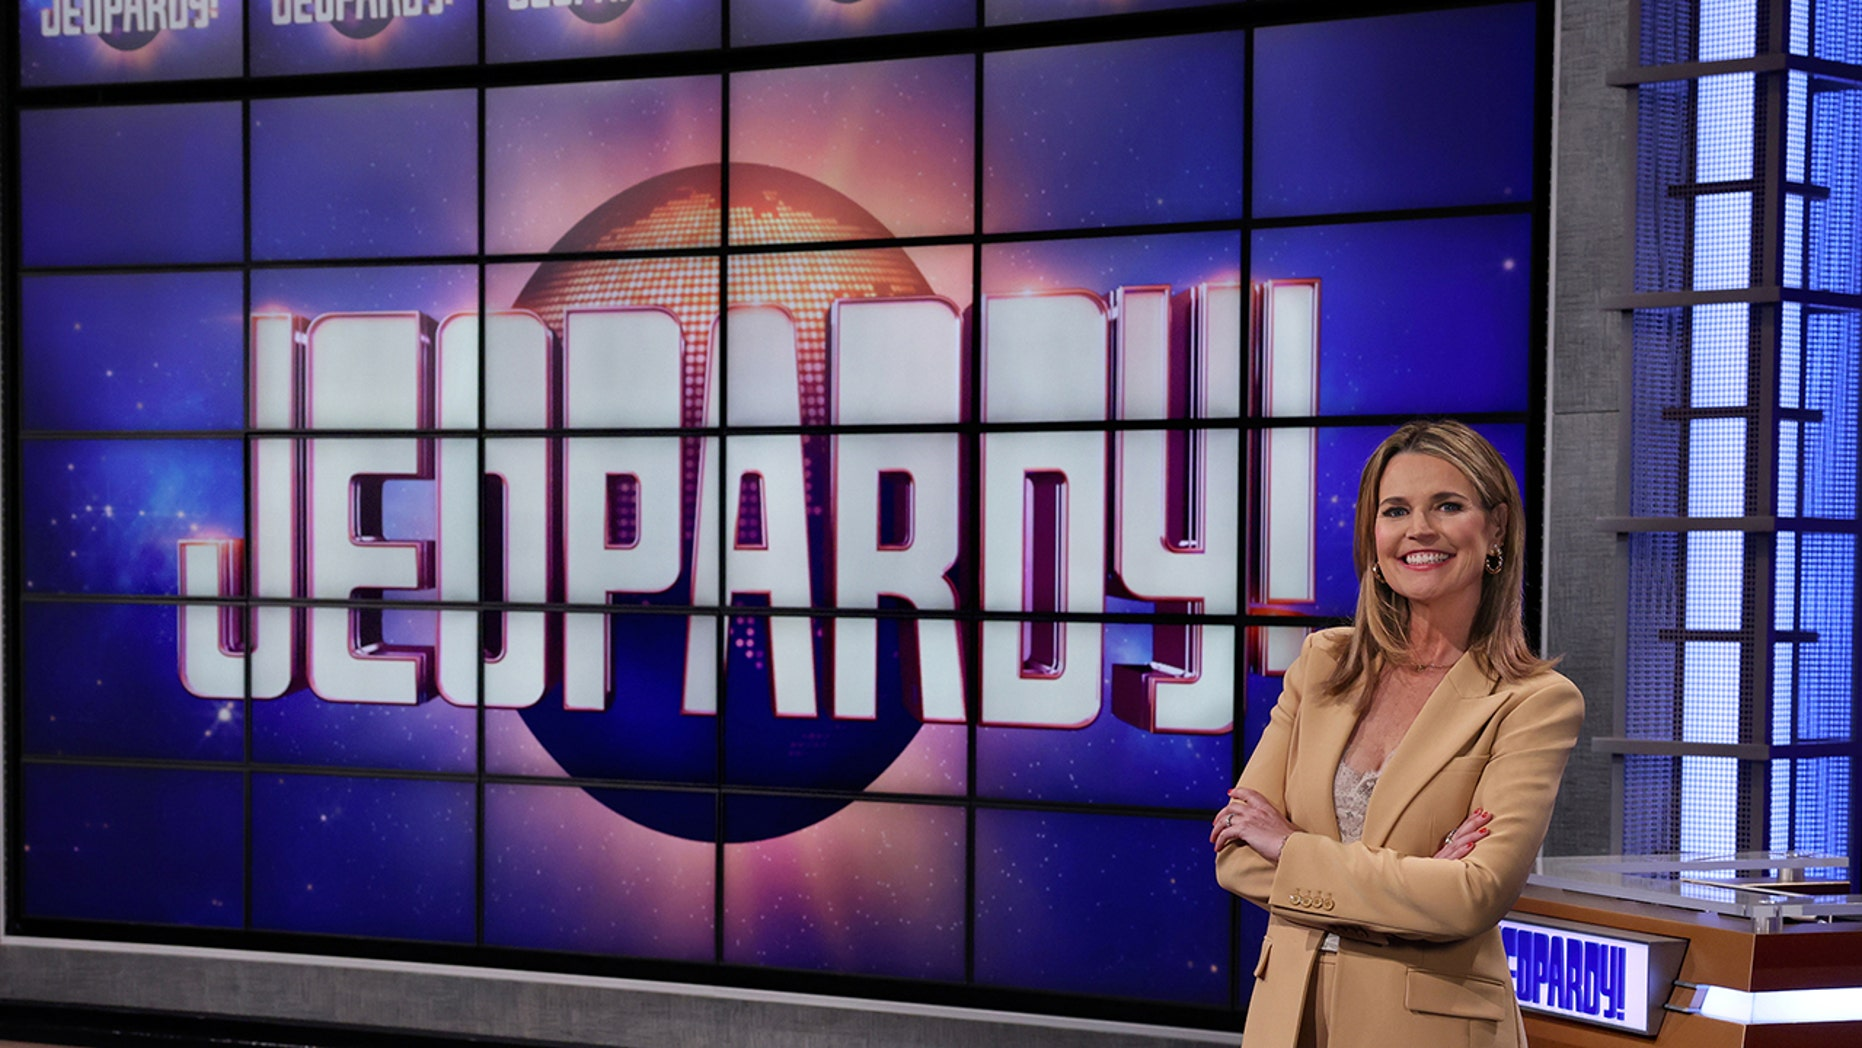 'Jeopardy!' viewers upset over 'misogynistic,' 'outdated' clue about a medical condition